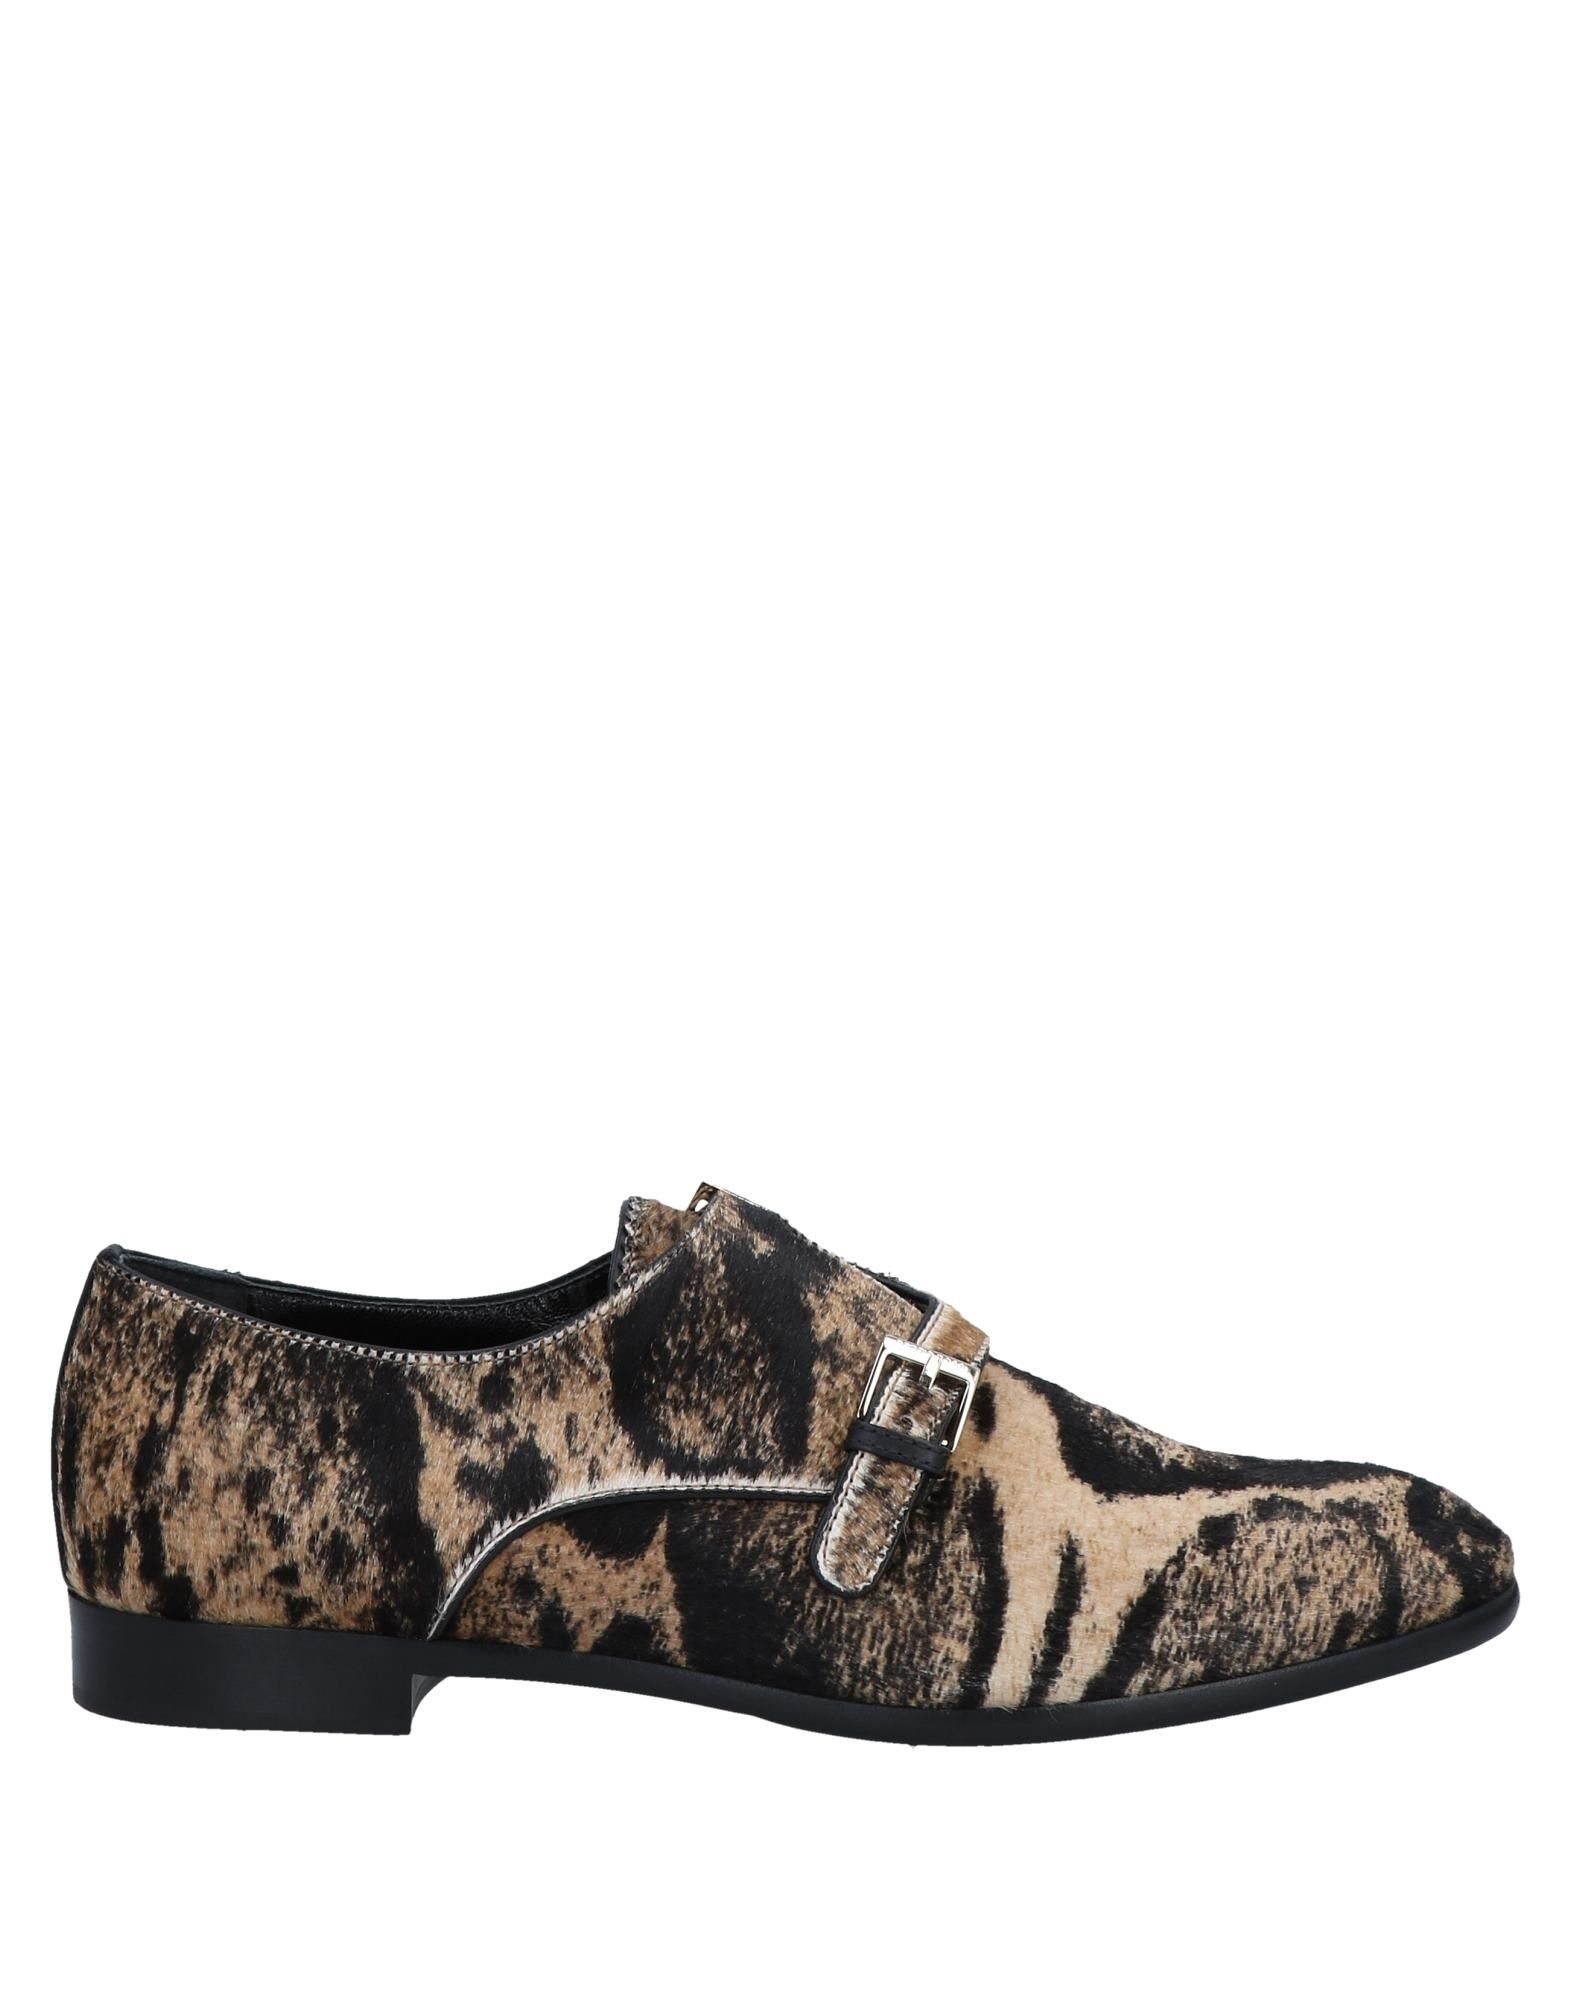 Sergio Rossi Loafers - Women Sergio Rossi Loafers online on 11563424XX  United Kingdom - 11563424XX on e4ba83